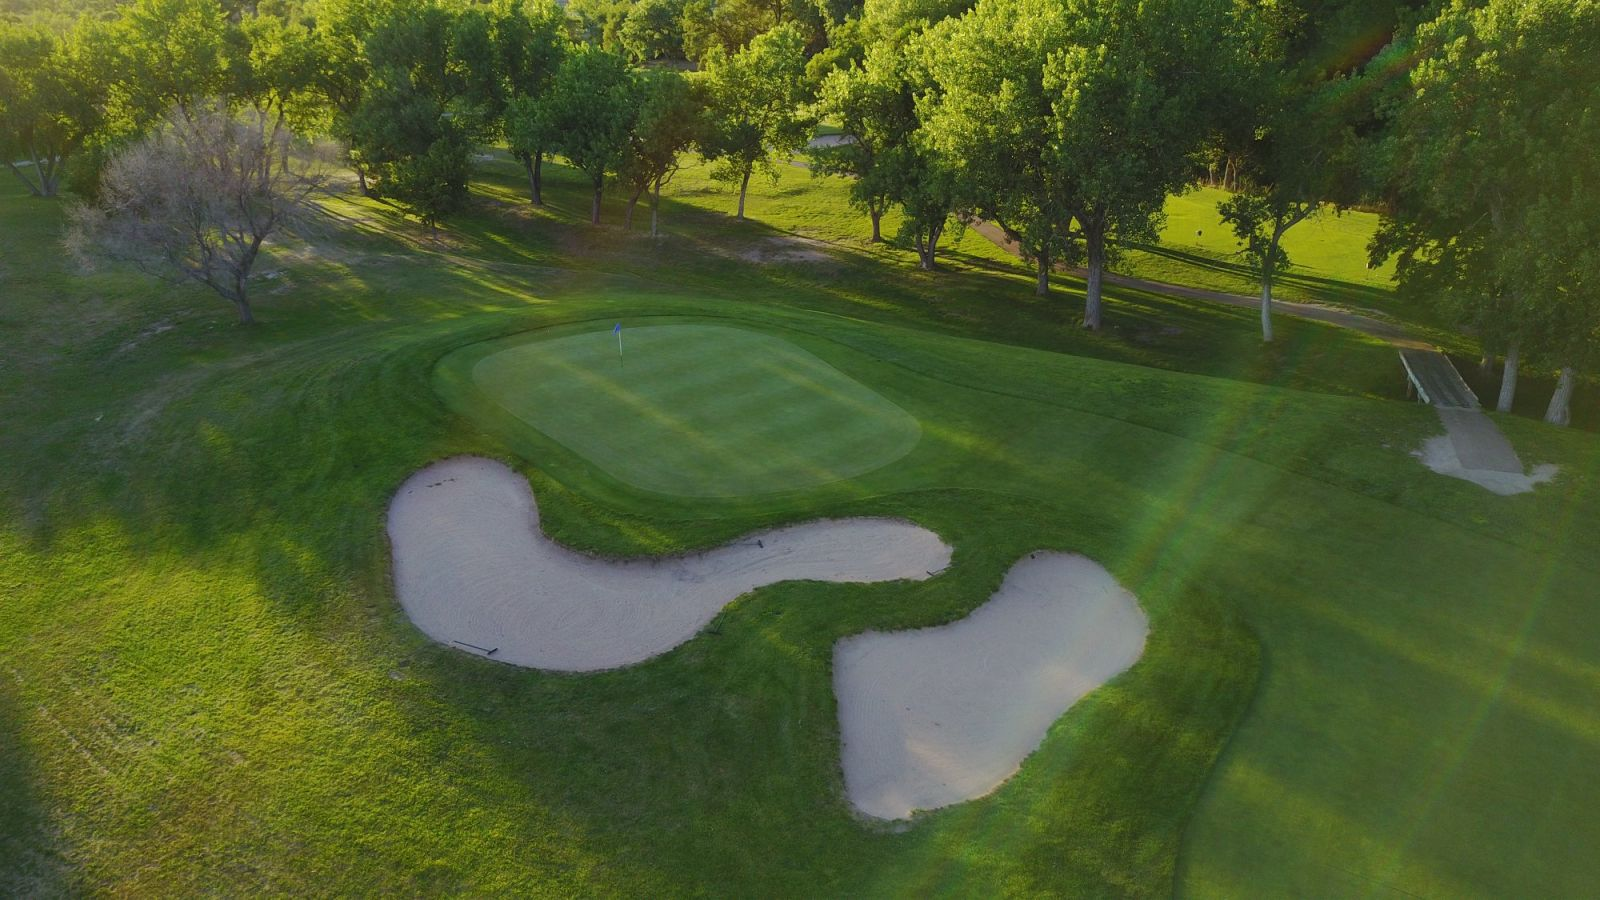 An aerial view of two sand traps on the course at Iron Eagle Golf Course in North Platte, Nebraska